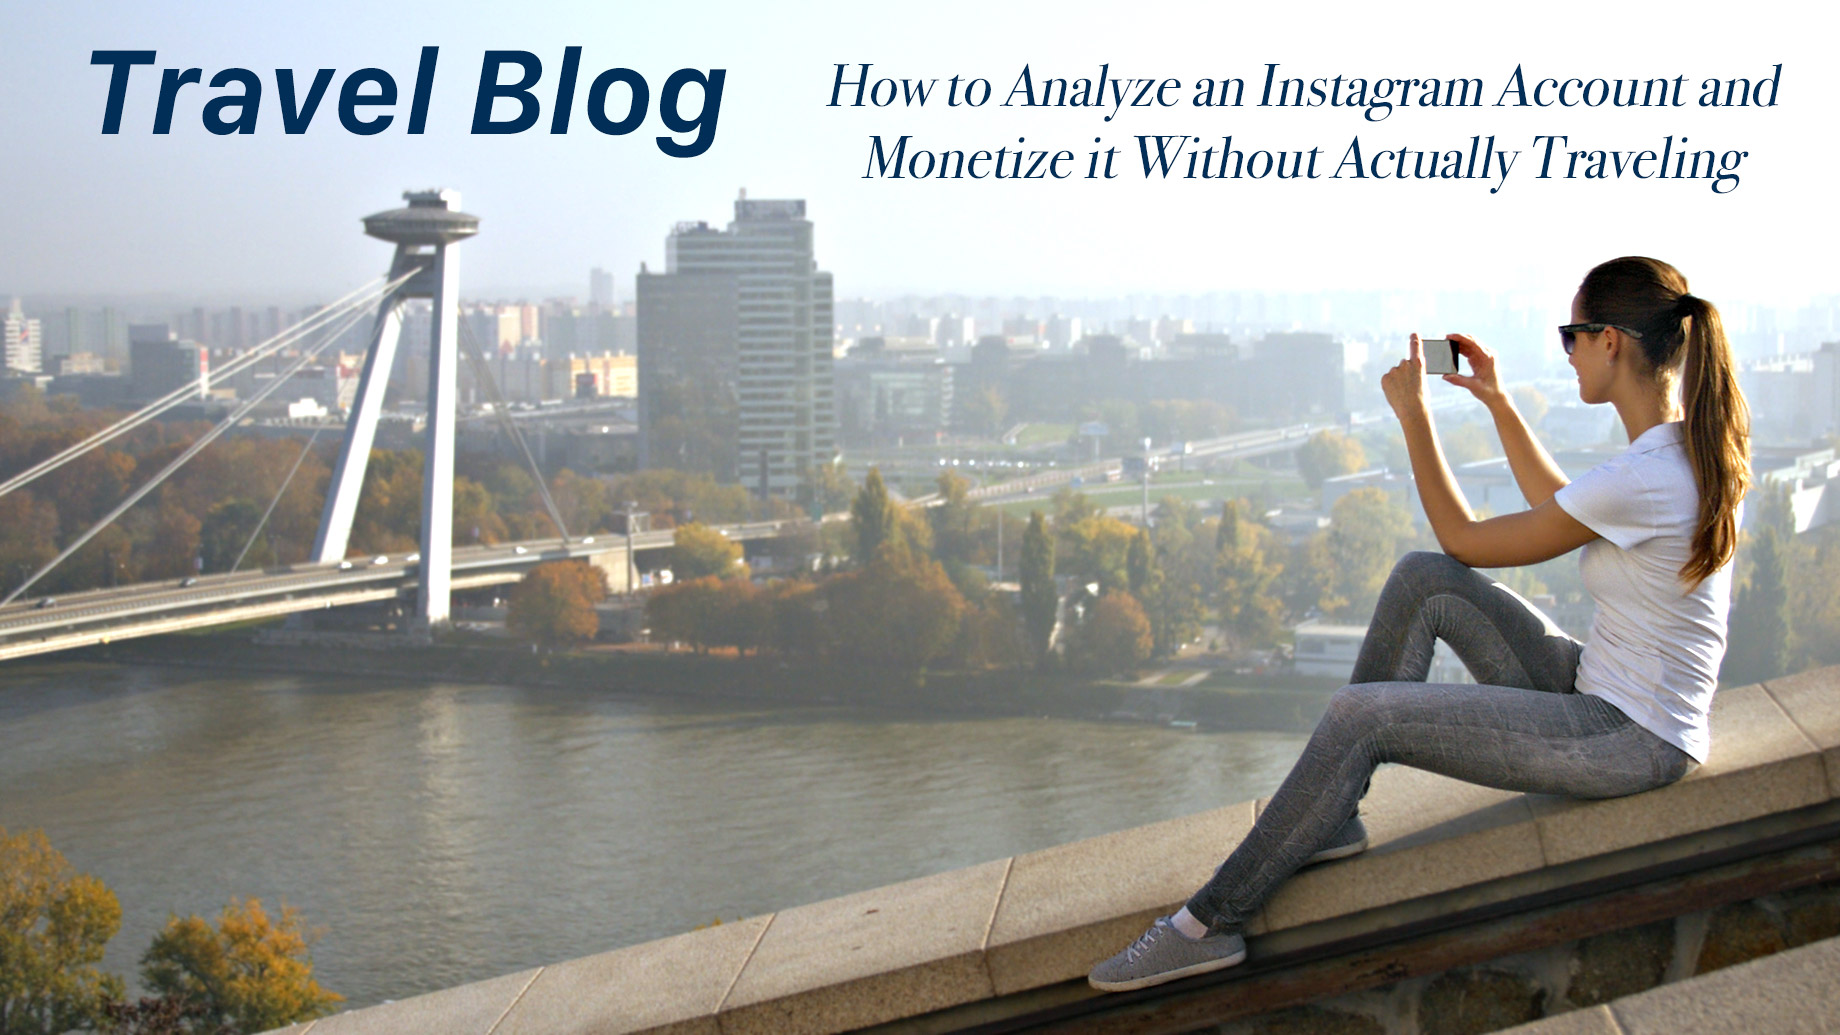 Travel Blog – How to Analyze an Instagram Account and Monetize it Without Actually Traveling